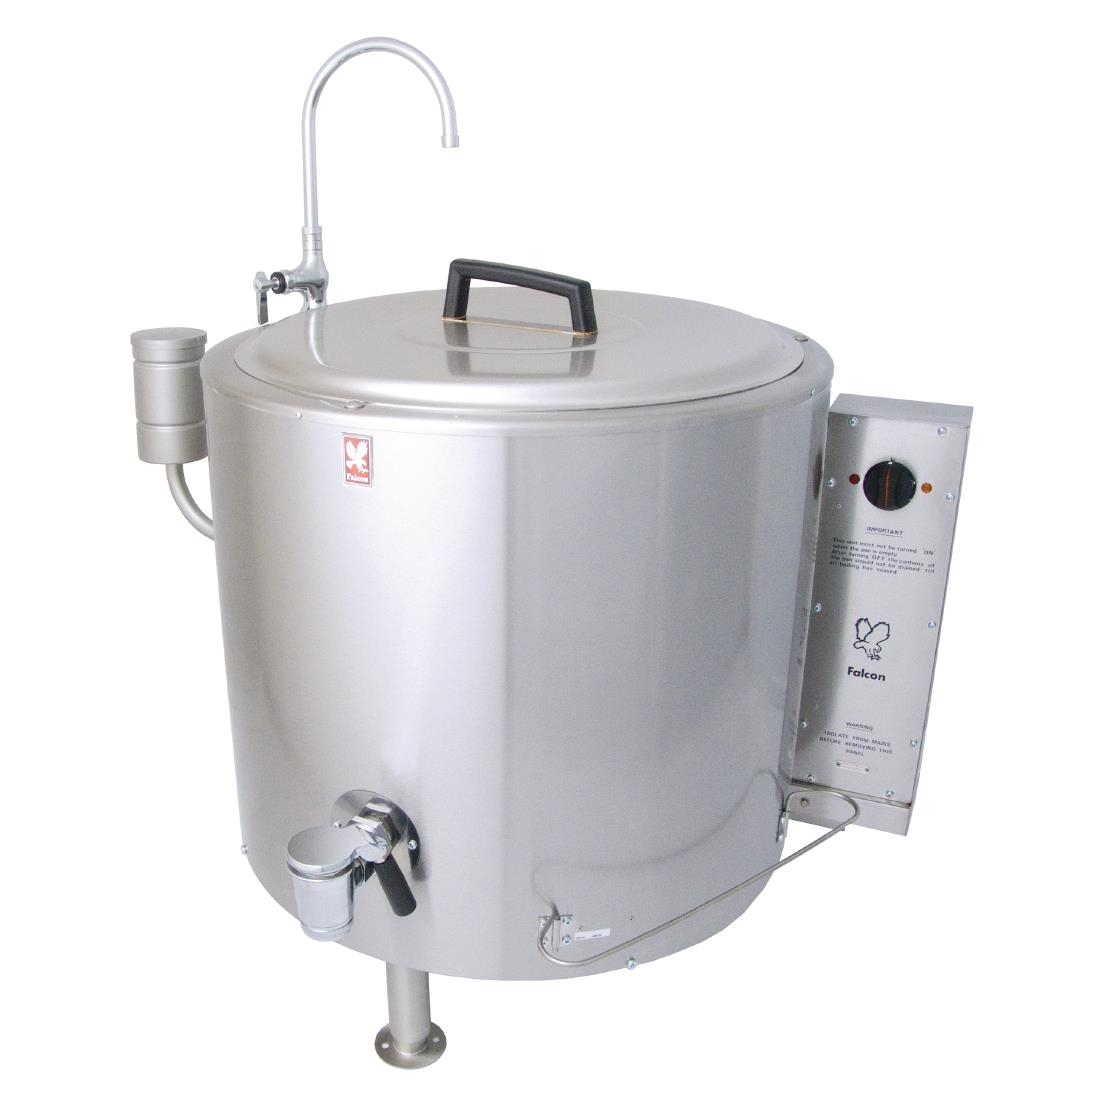 Image of Falcon Dominator Round-Cased Boiling Pan E2078-135